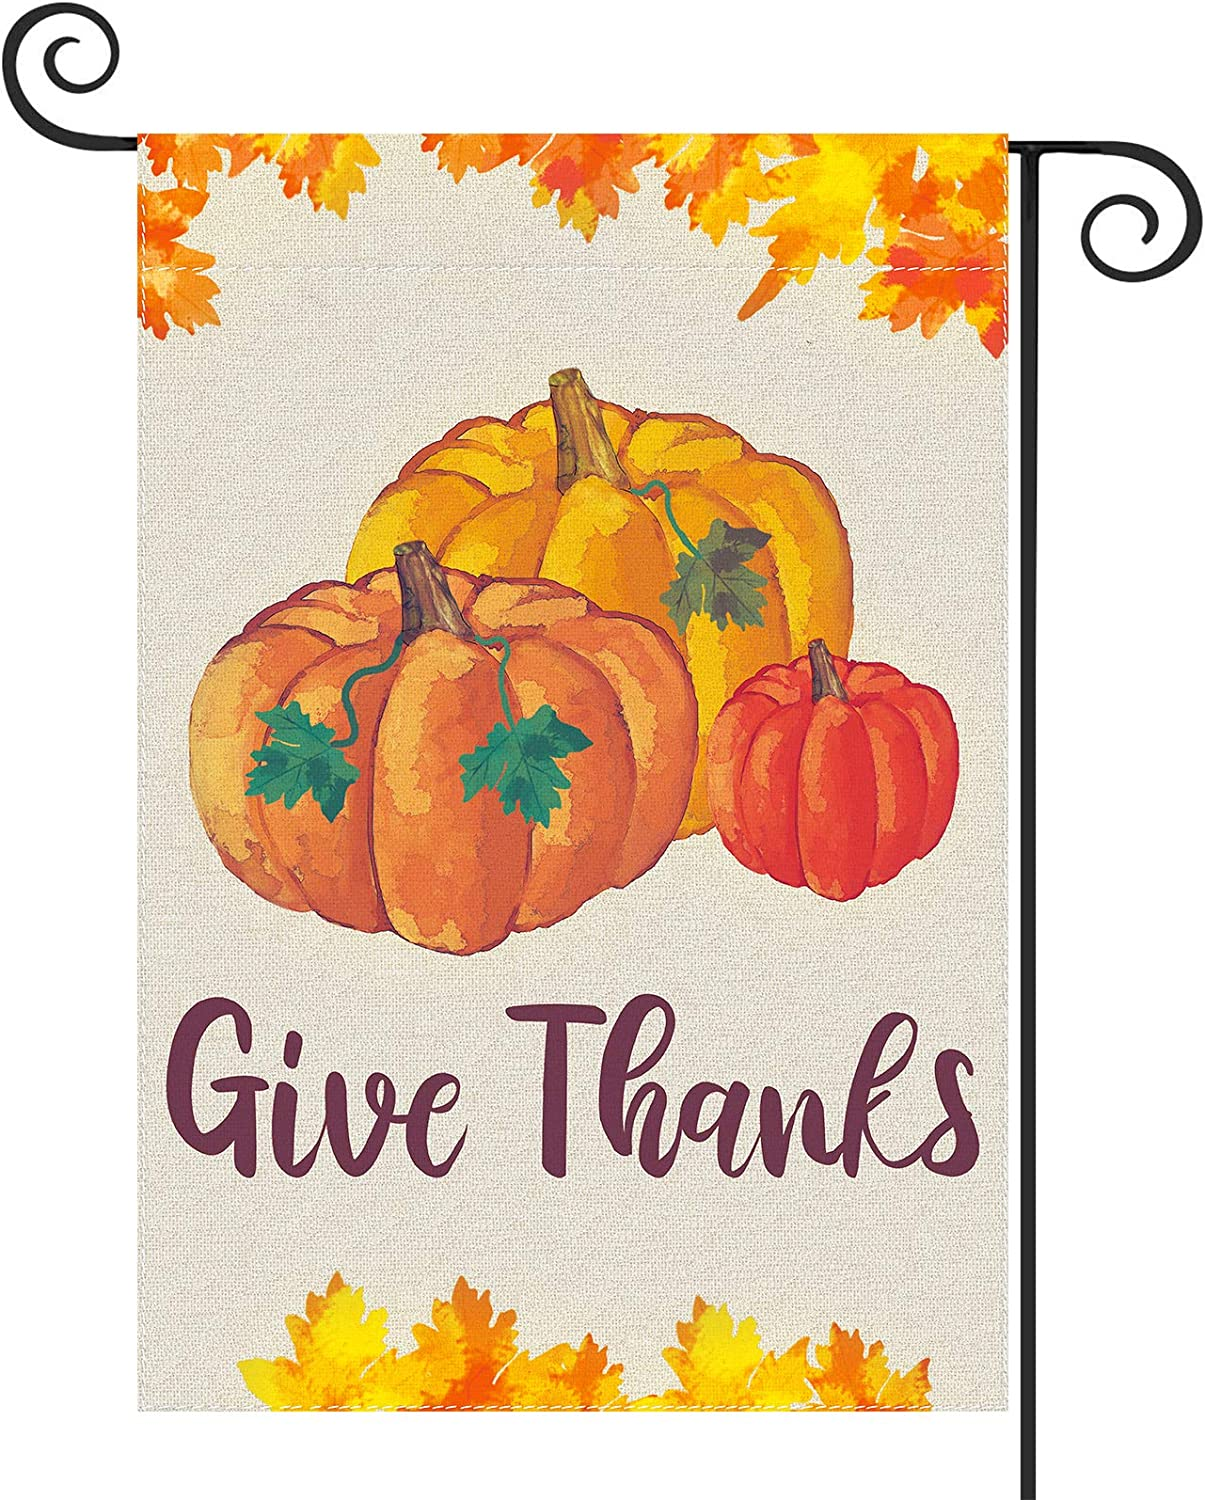 Ivenf Thanksgiving Pumpkin Give Thanks Garden Flag Double Sided Outdoor Yard Patio Decorations, Burlap Fall Banners Supplies, 12.5 x 18 inch